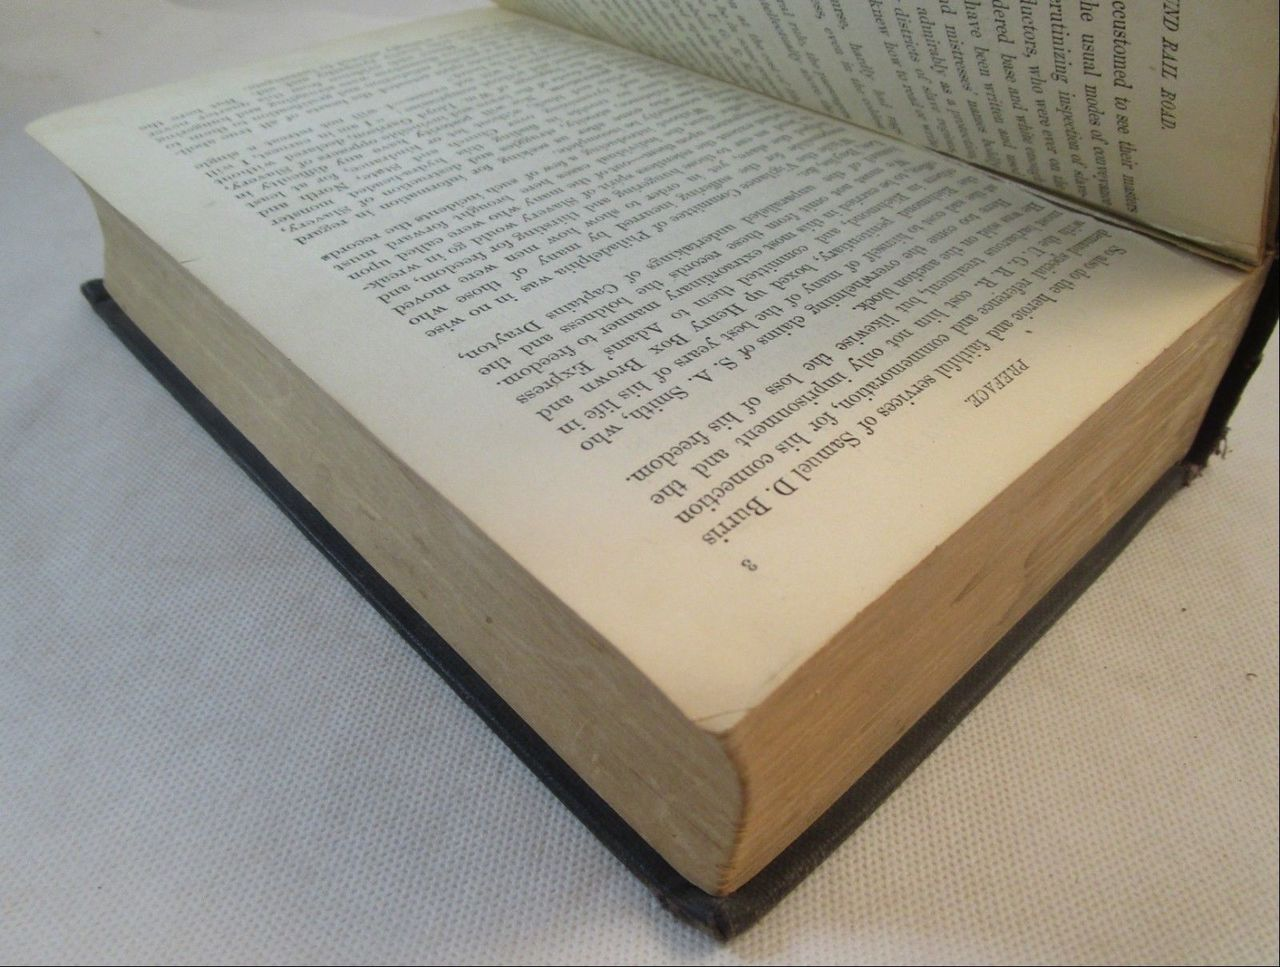 THE UNDERGROUND RAIL ROAD: A Record of Facts, Authentic Narratives..., by William Still - 1872 [1st Ed]